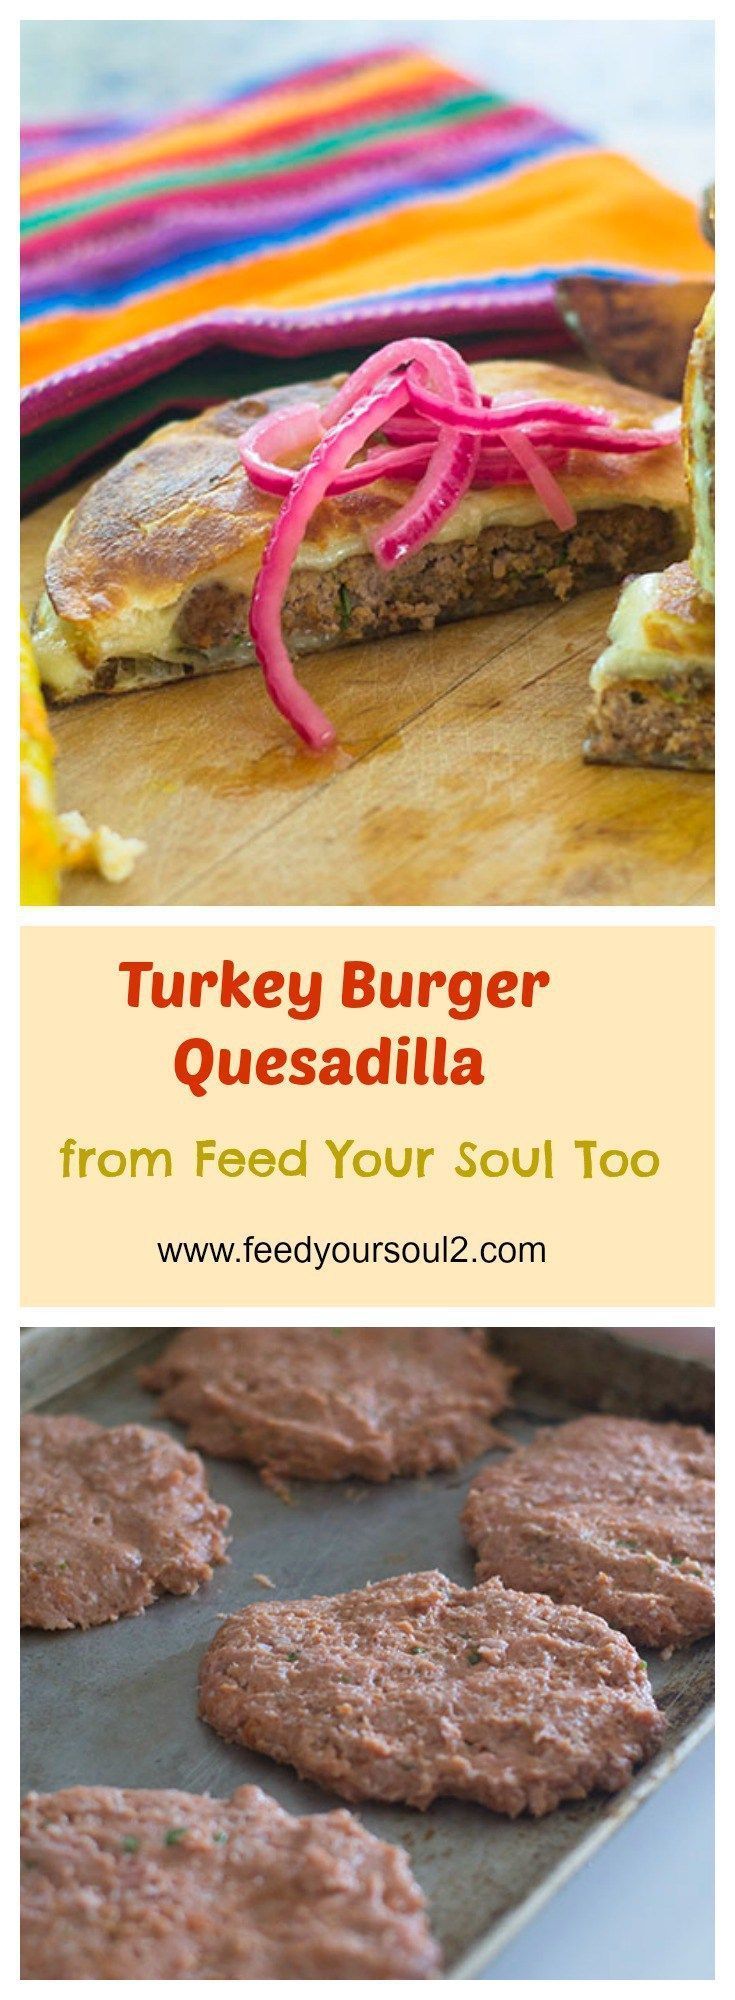 Turkey Burger Cheese Quesadillas from Feed Your Soul Too